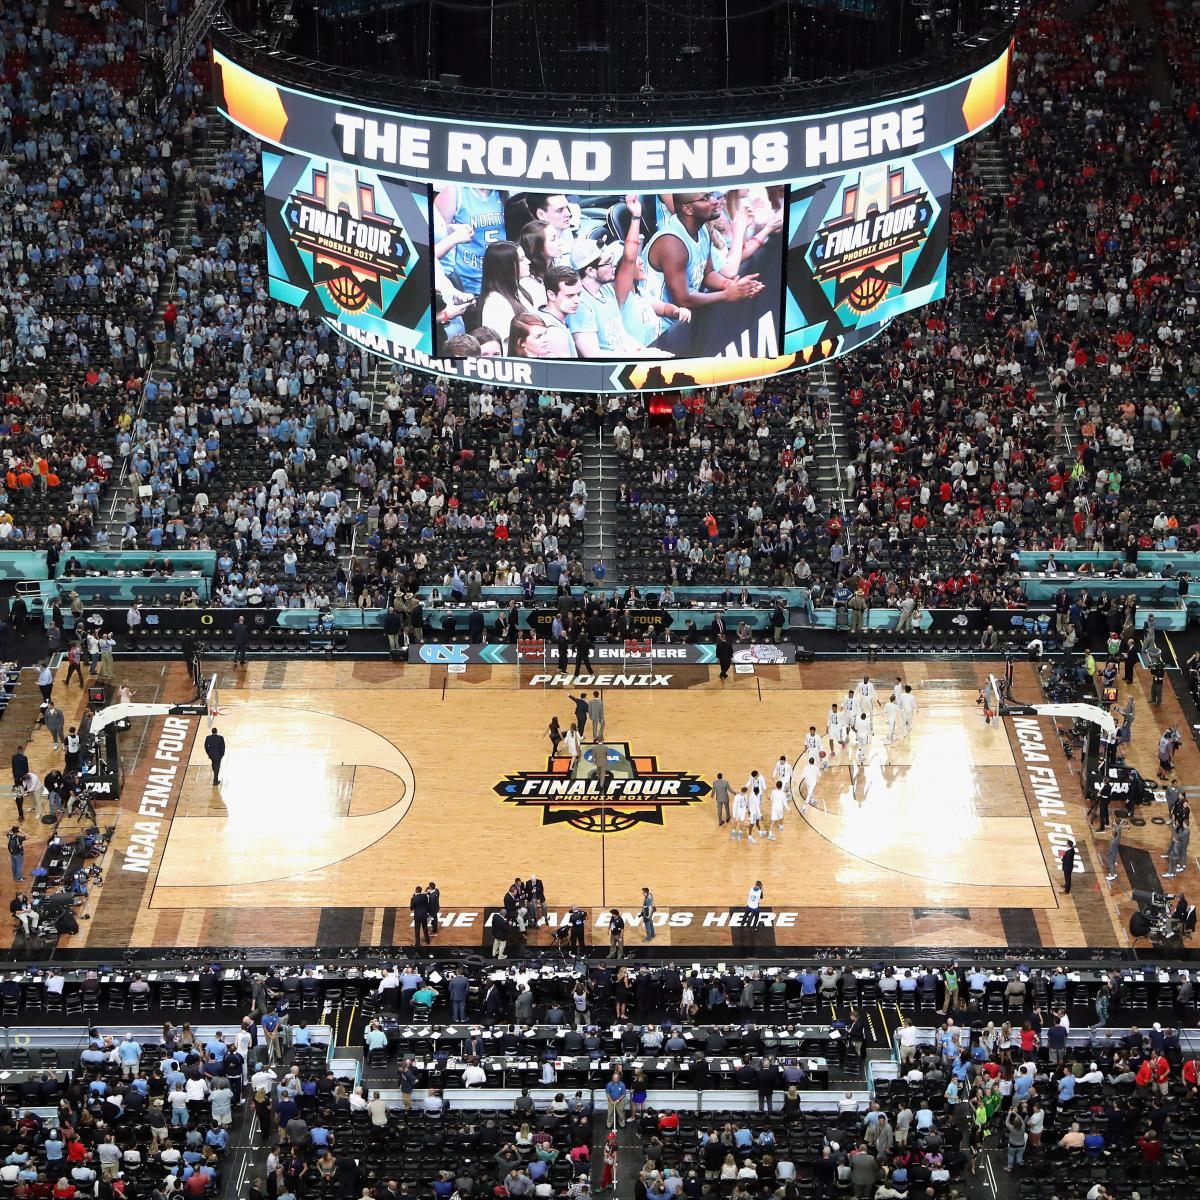 Final Four Weekend Will Feature 3-on-3 Tournament for College Seniors